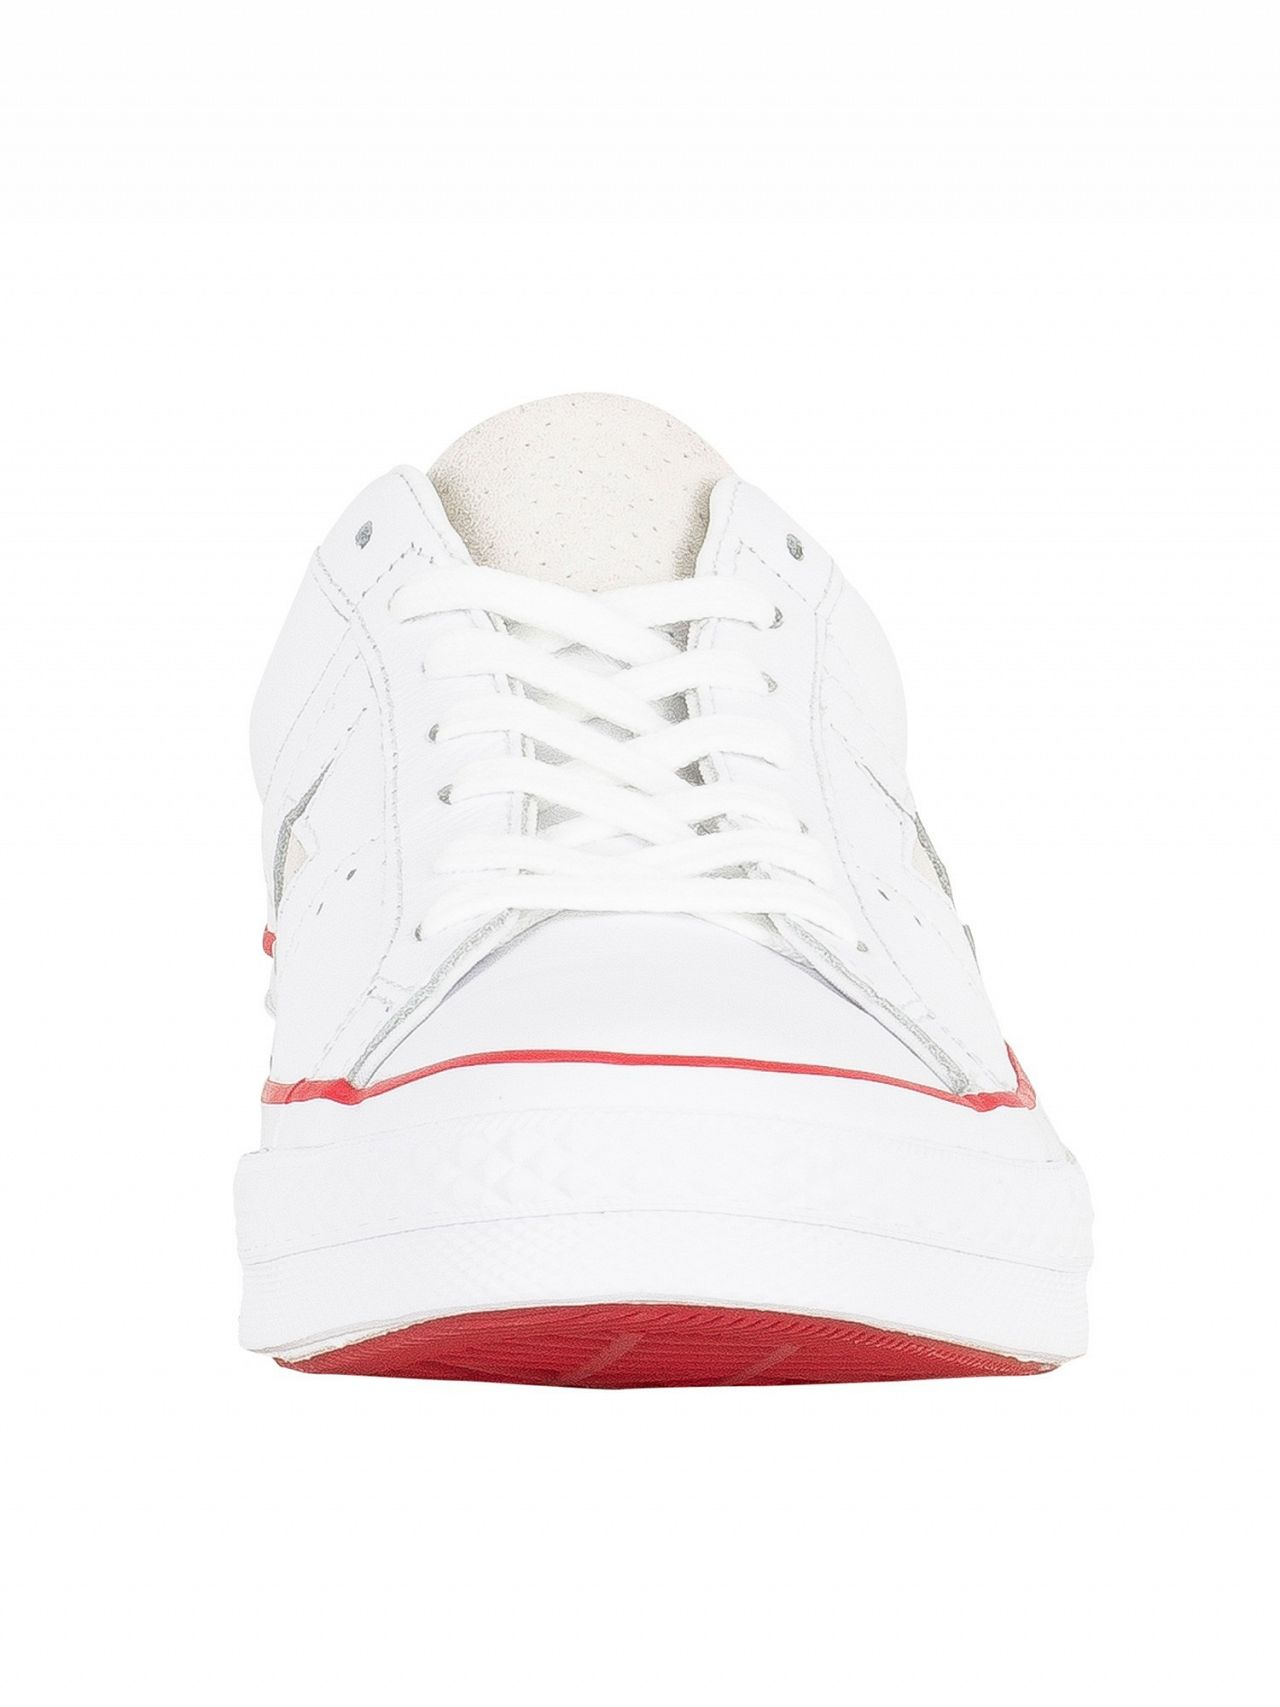 6b0c4535c935b7 Converse White Gym Red White One Star Ox Leather Trainers